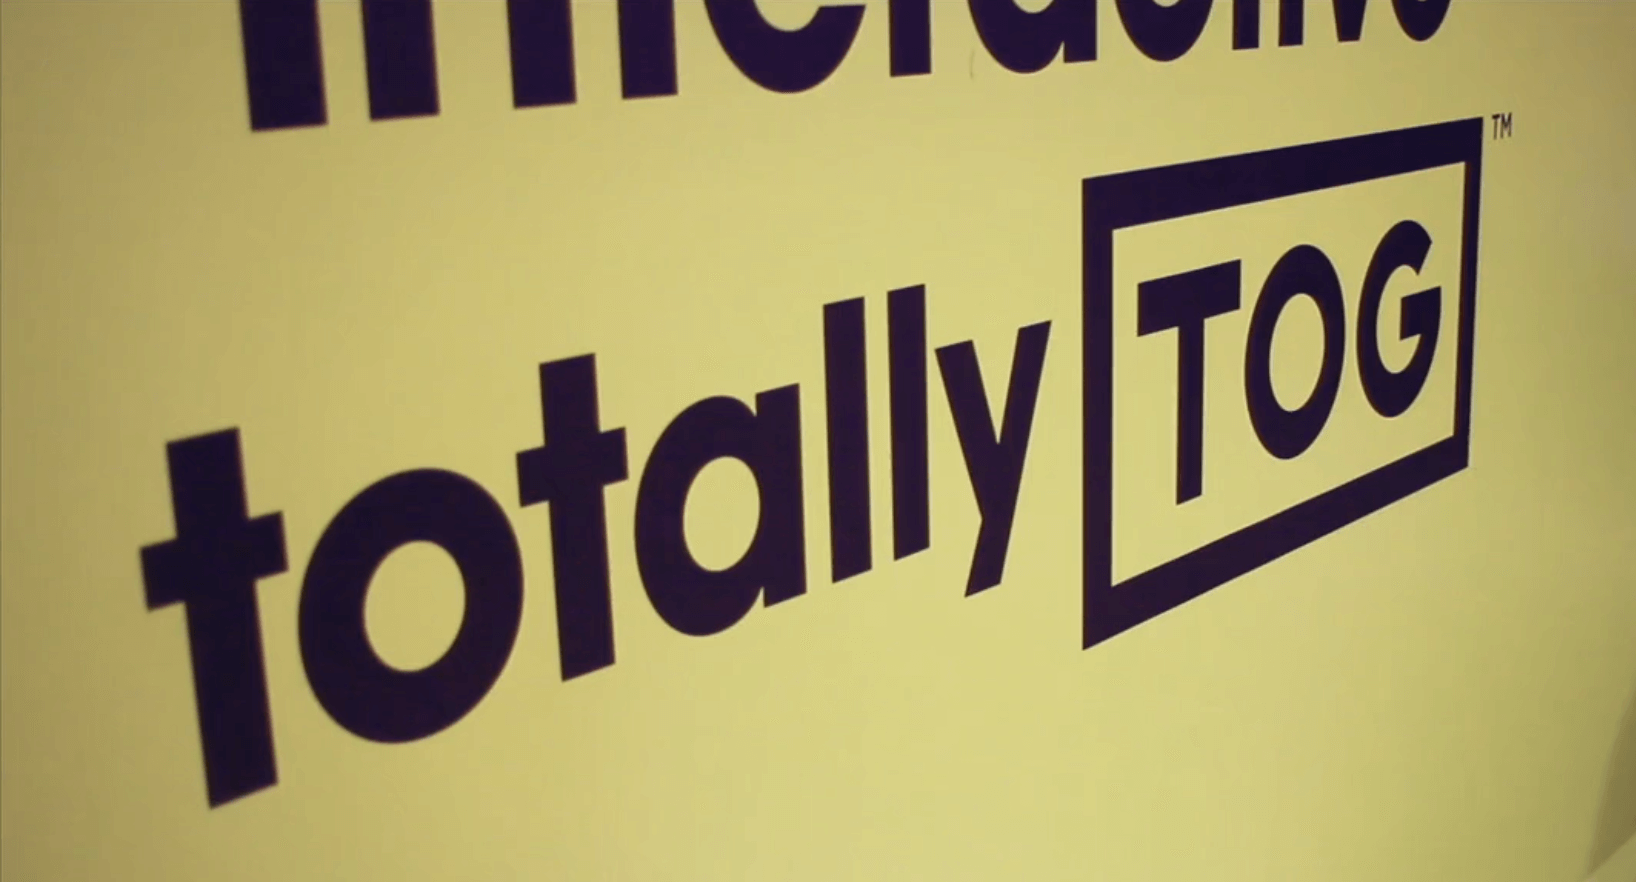 TOG BIRTHDAY - Salone Del Mobile 2014 - WALLPAPER MAKING OF -